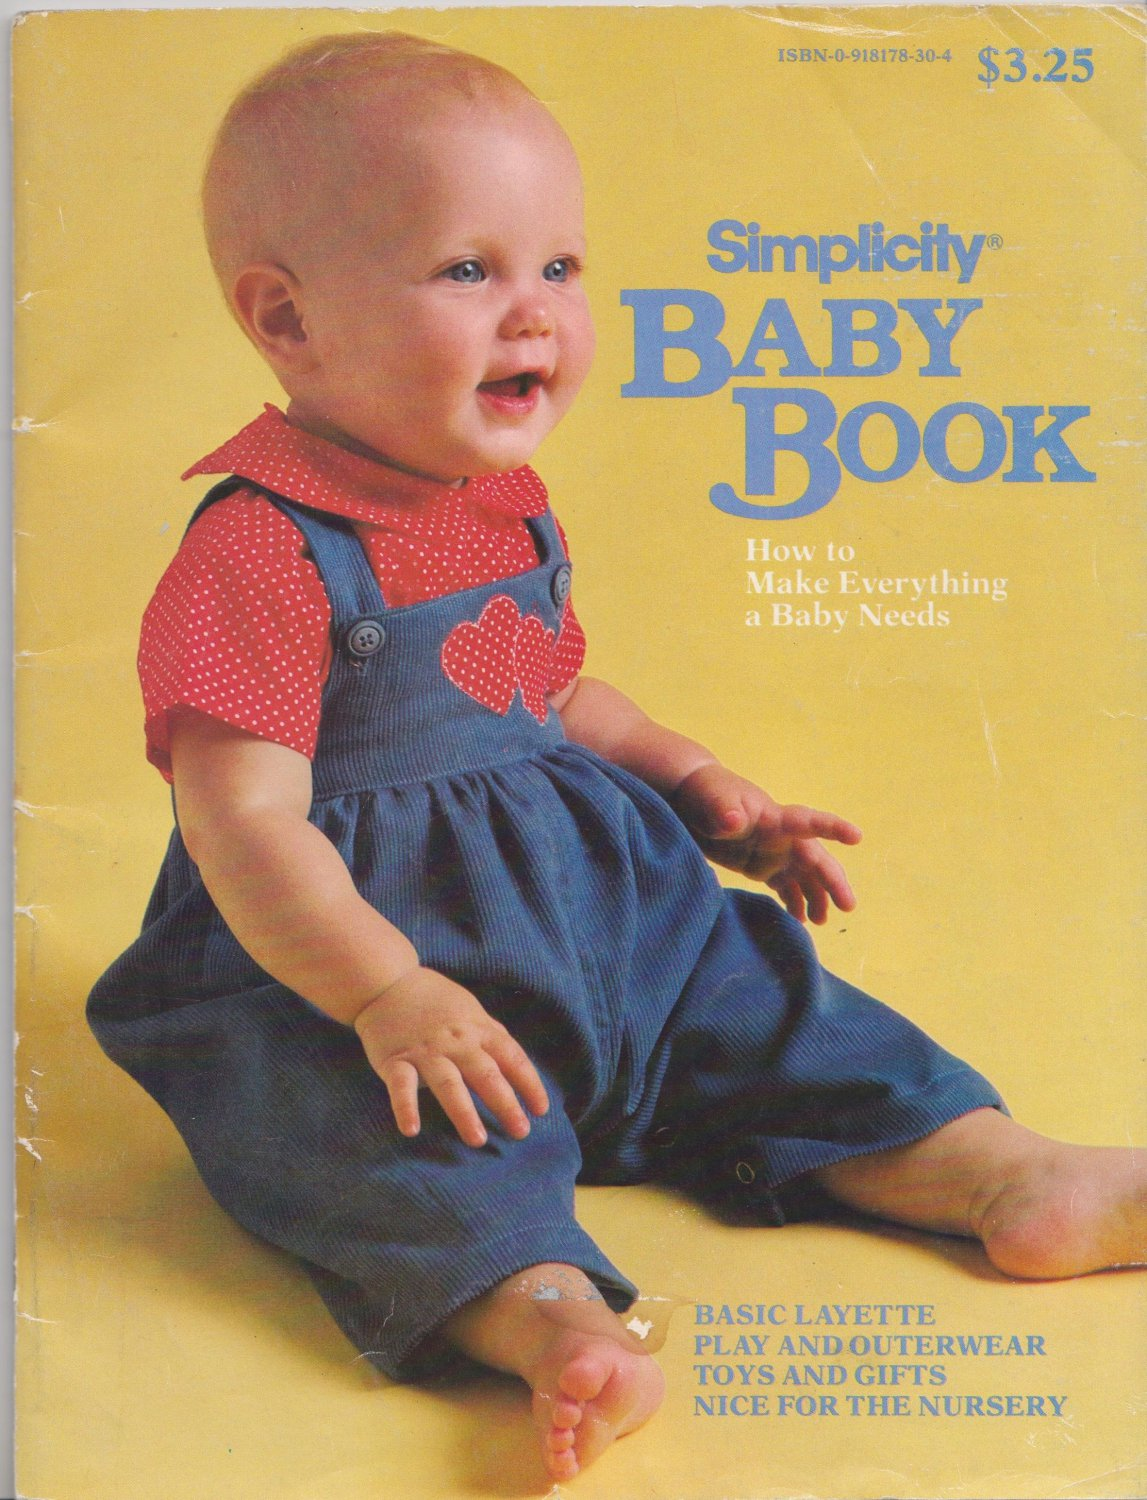 Simplicity Baby Book How To Make Everything A Baby Needs by Susan P. Curtis